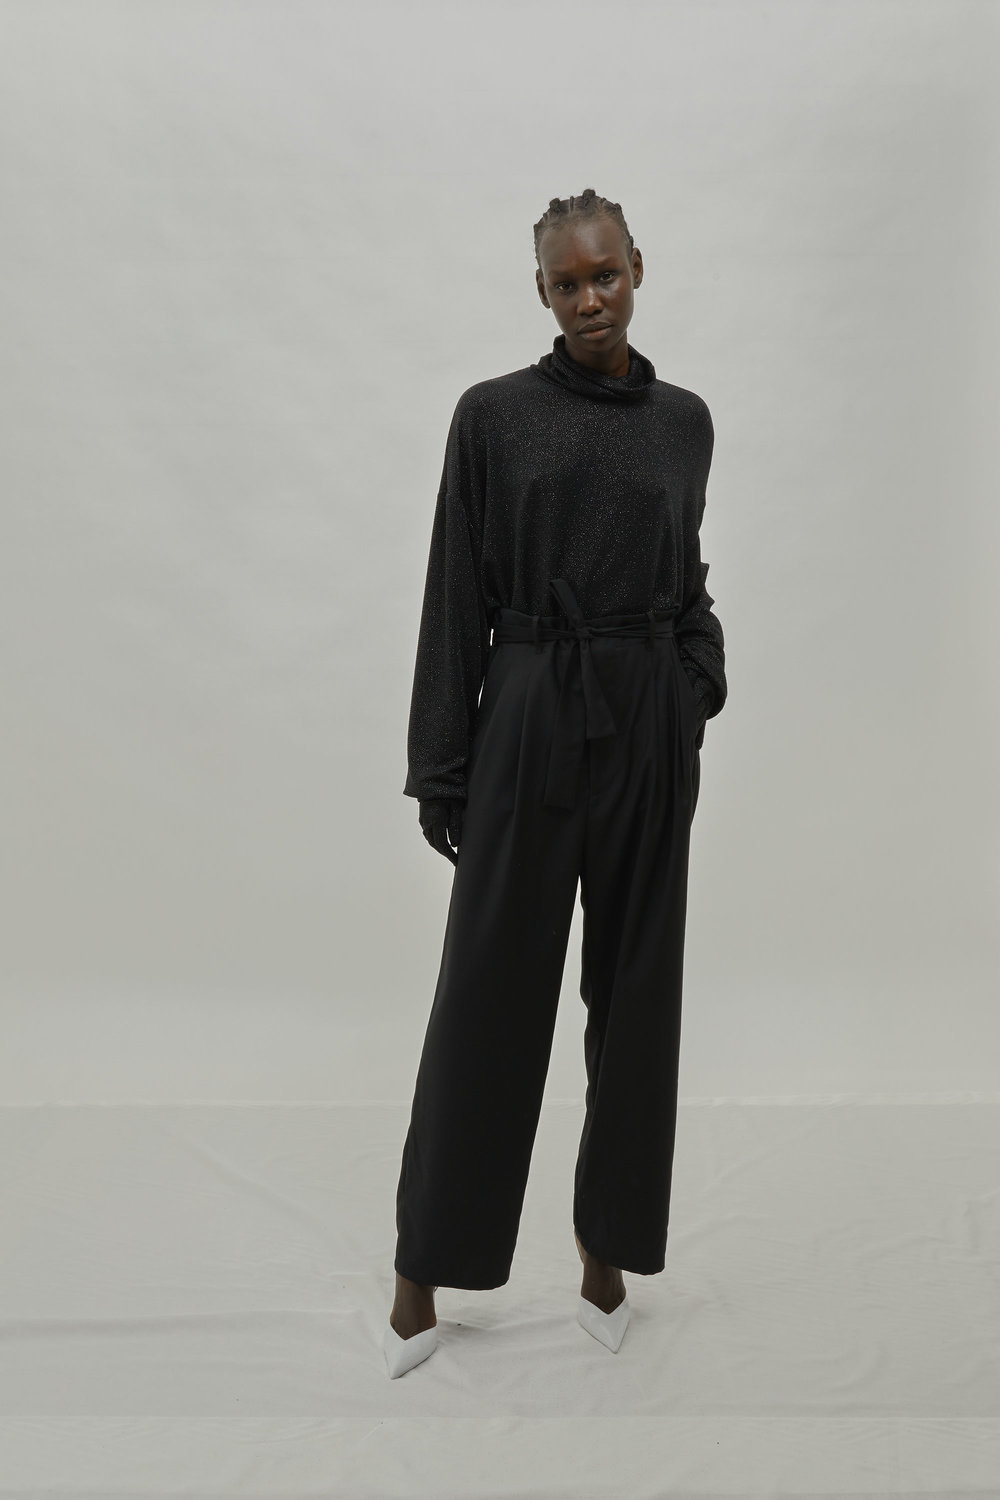 Black High Waisted Pant For One DNA FW19 Lookbook